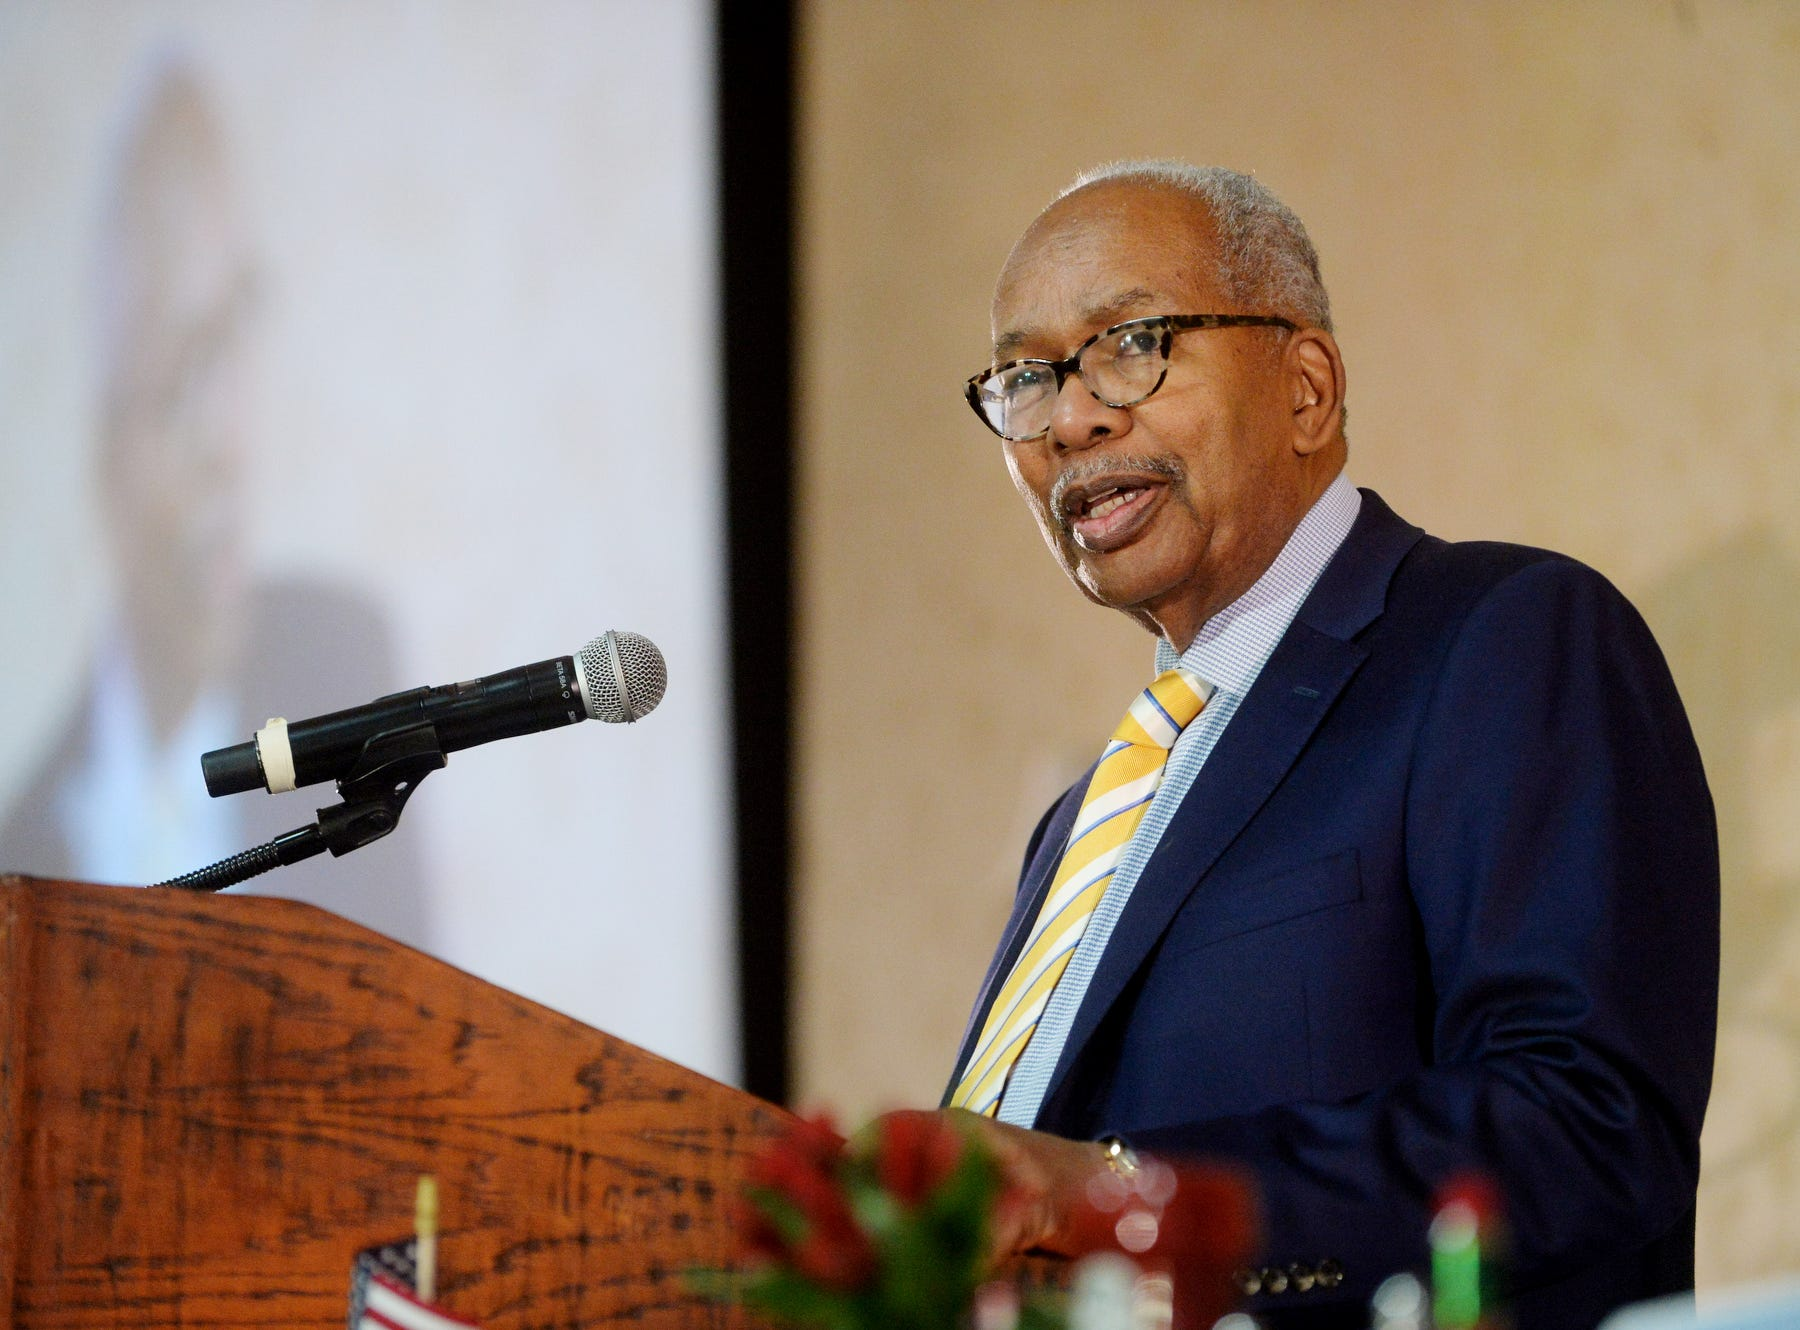 Ernest Green, one of the Little Rock Nine, was the keynote speaker at the 38th annual Martin Luther King Jr. Prayer Breakfast in Asheville Jan. 19, 2019